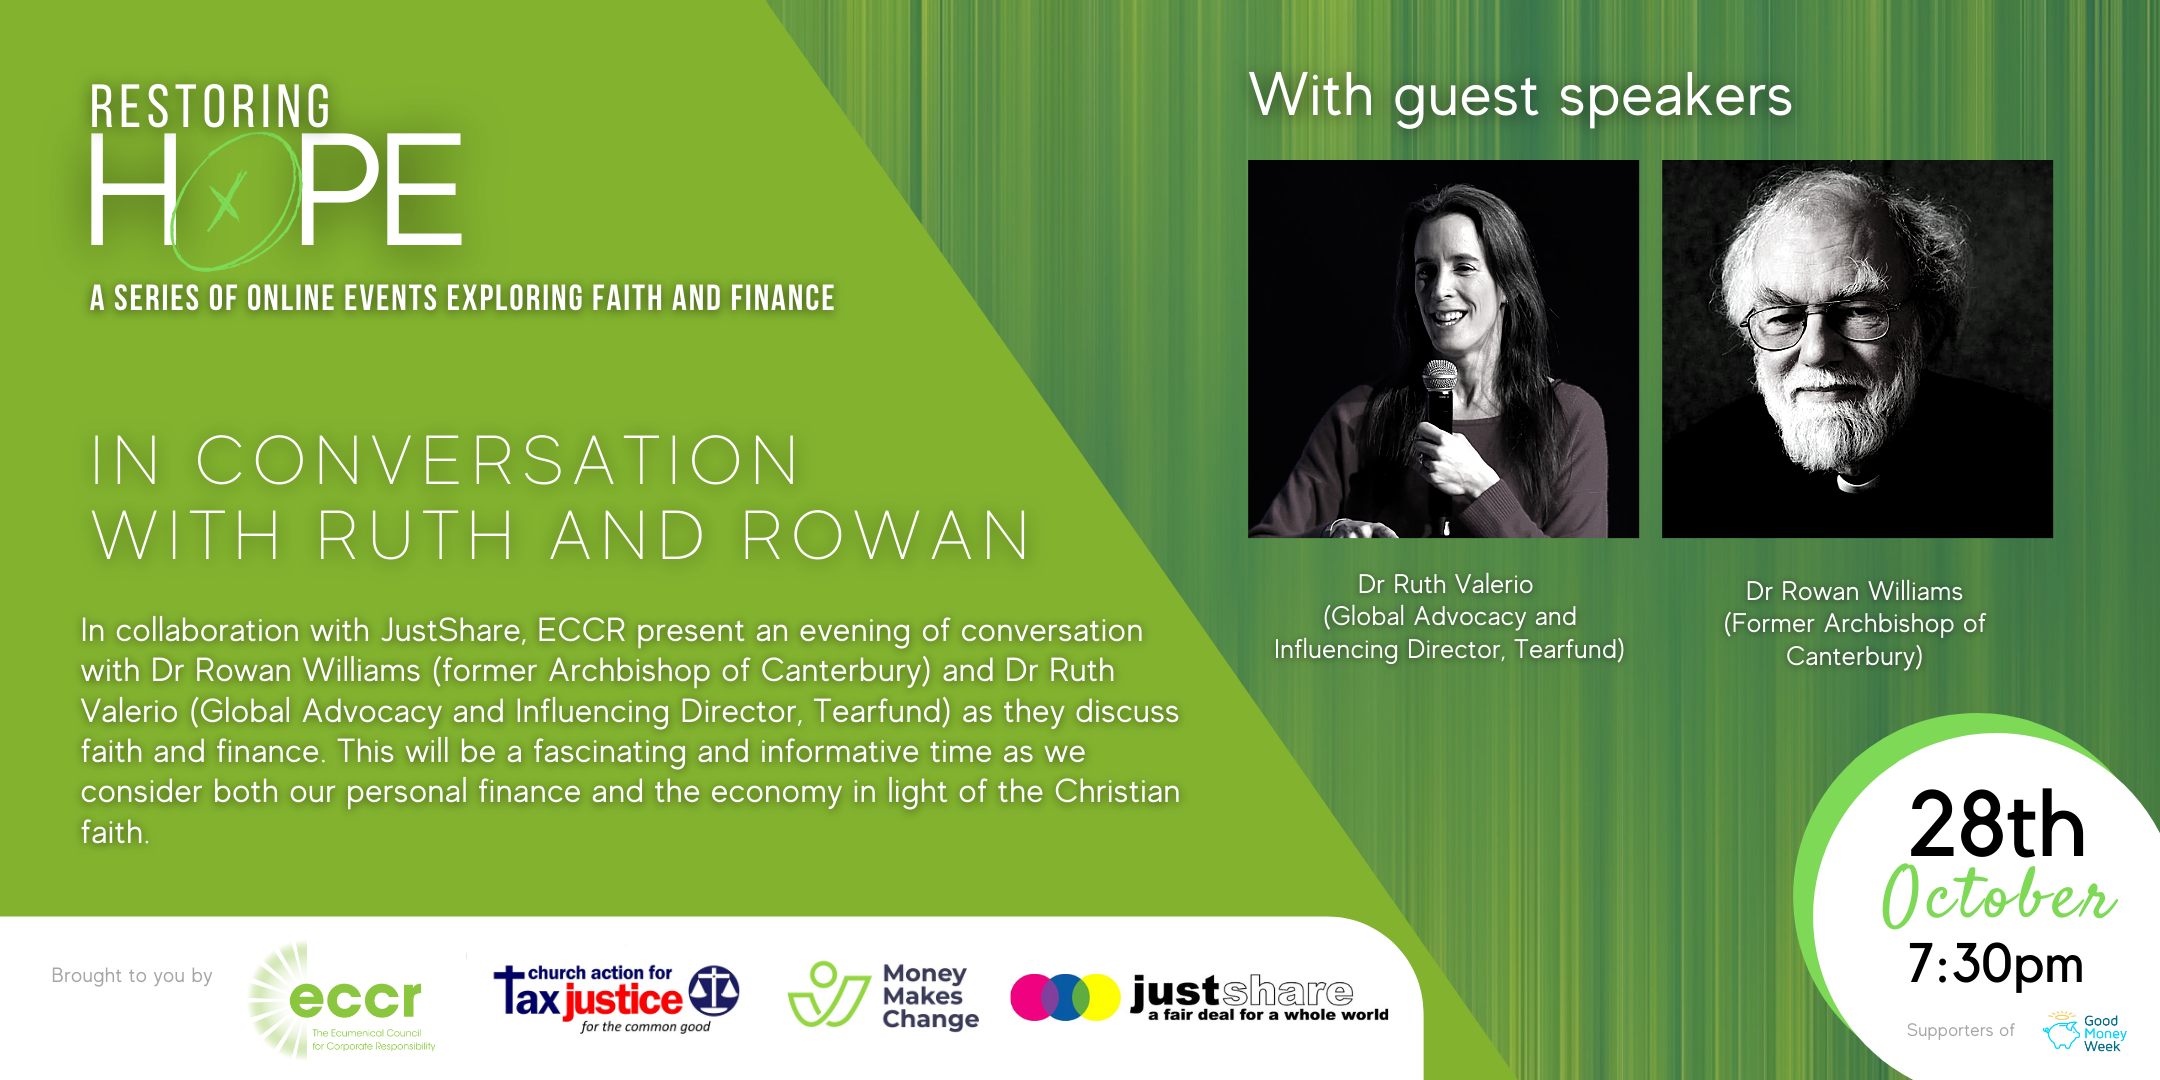 Restoring Hope | In Conversation with Ruth and Rowan